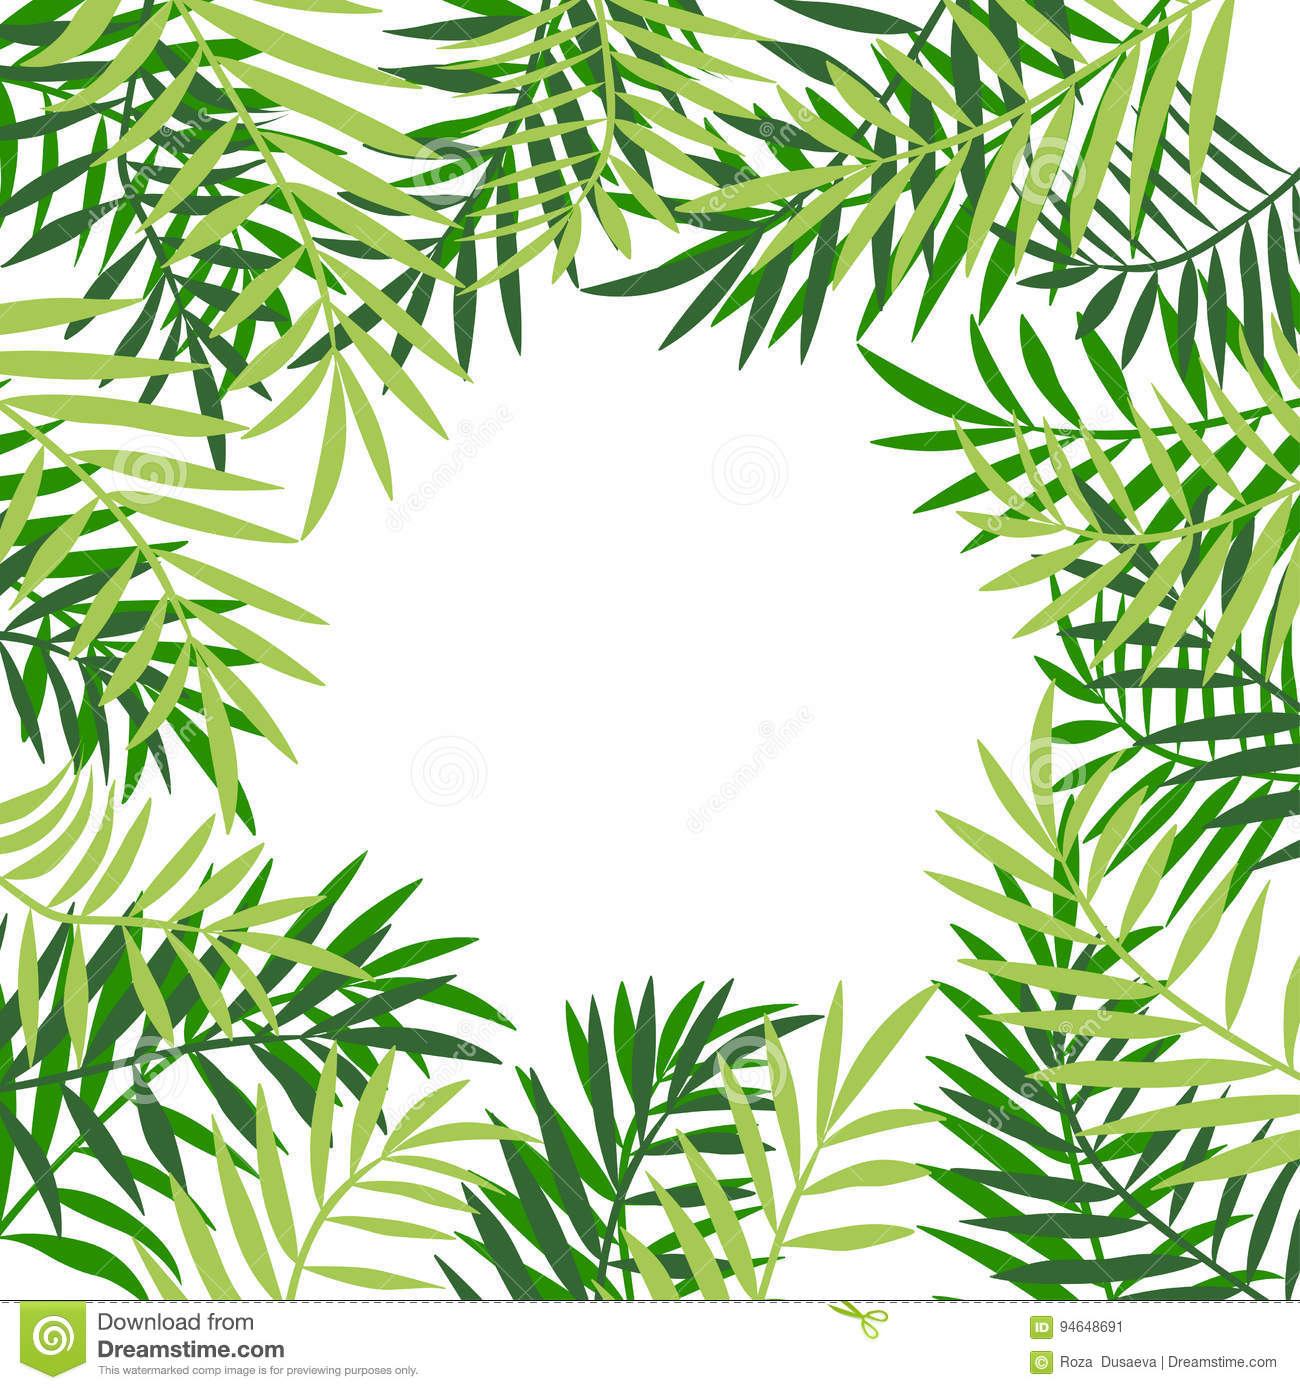 palm card template word - palm tree leaves border 3 stock vector illustration of